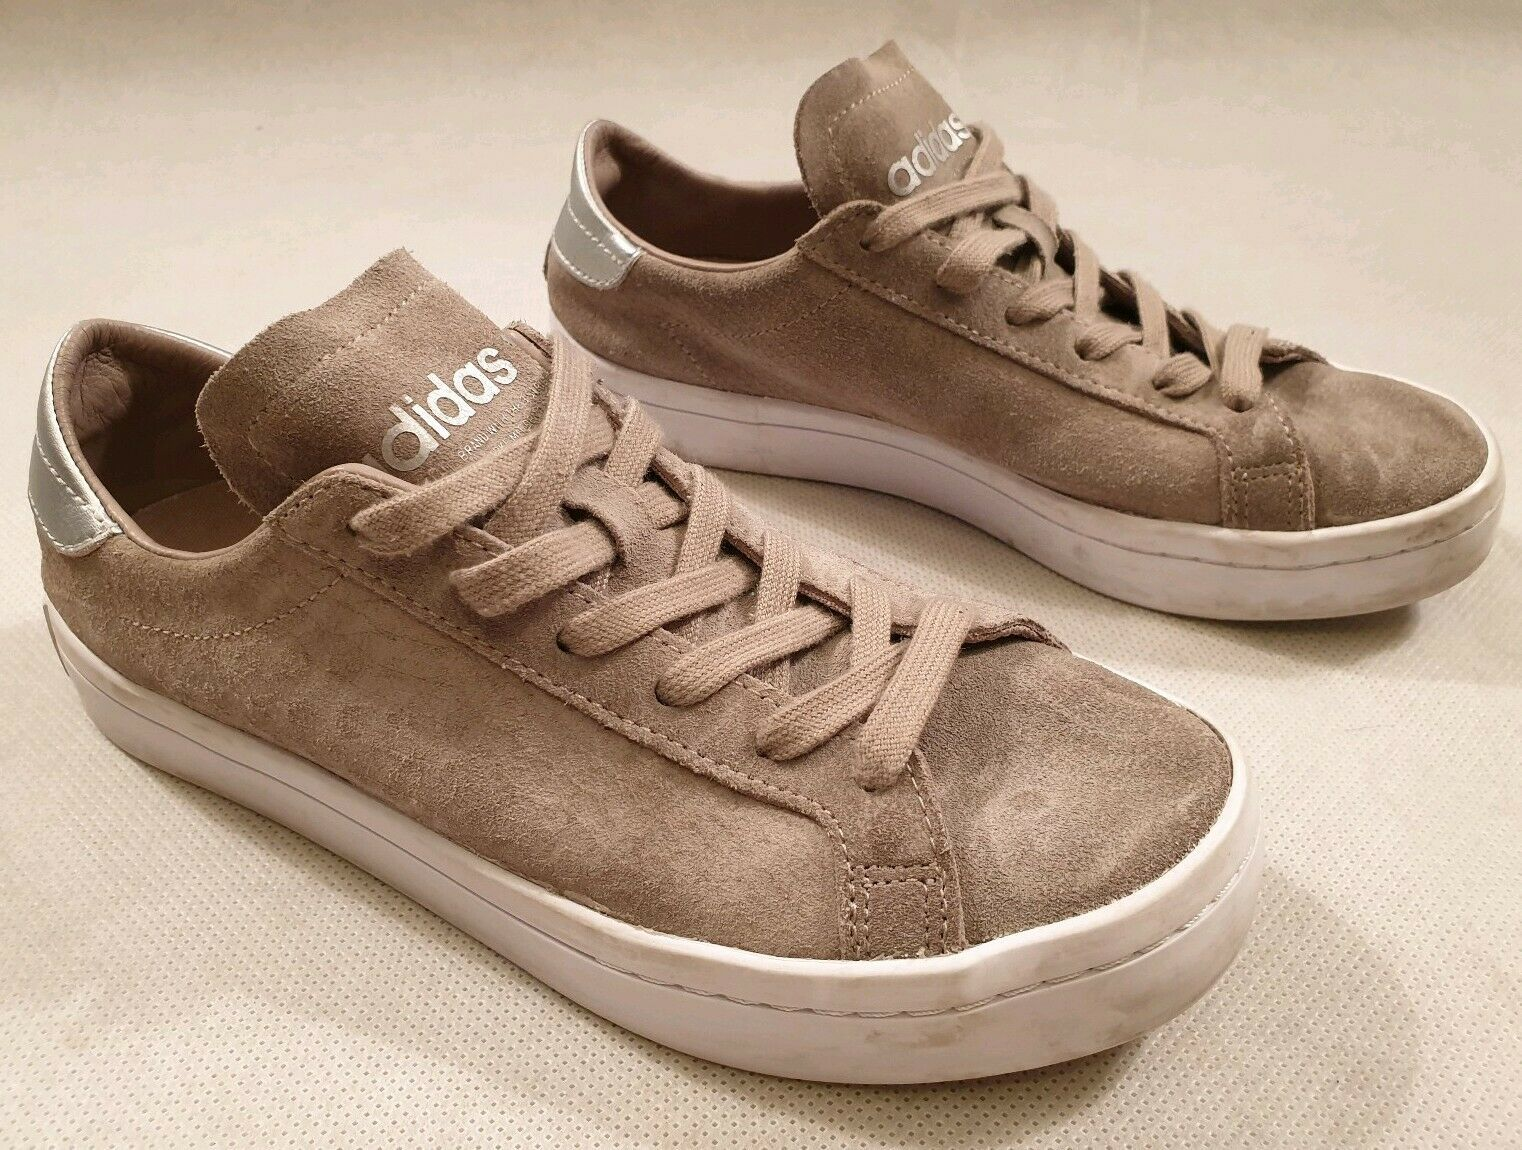 Primary image for Adidas Beige Suede Trainers Lace Trainers Art CG2704 UK Size 4 EU 36.5 RRP £70